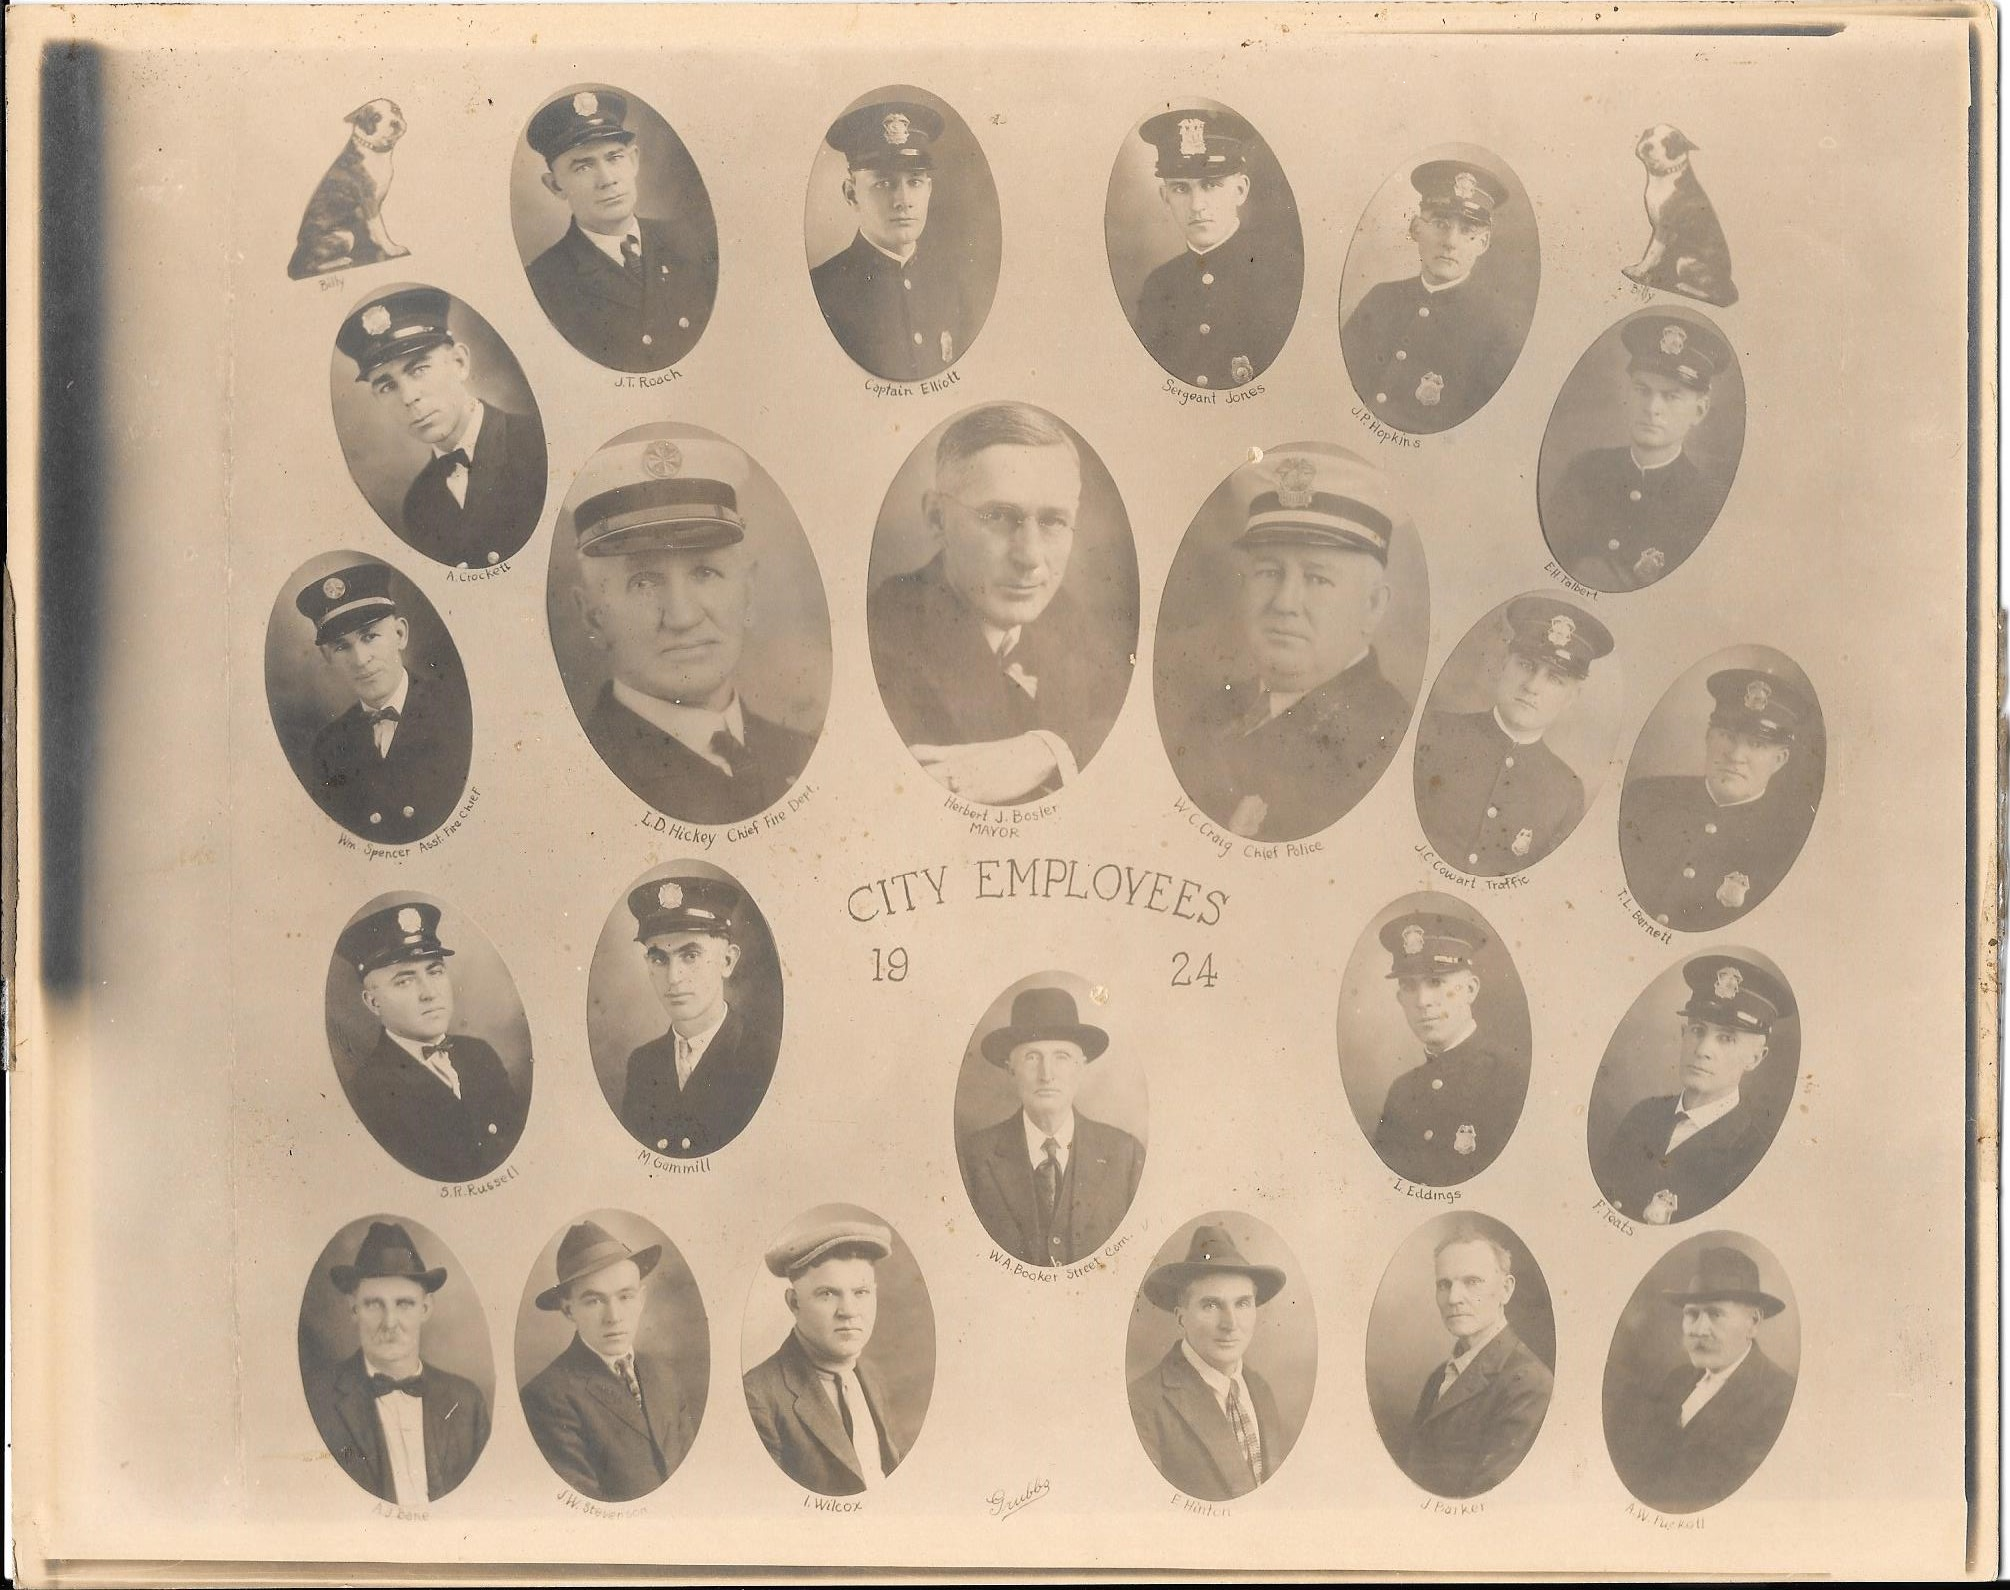 1924 City Employees.png